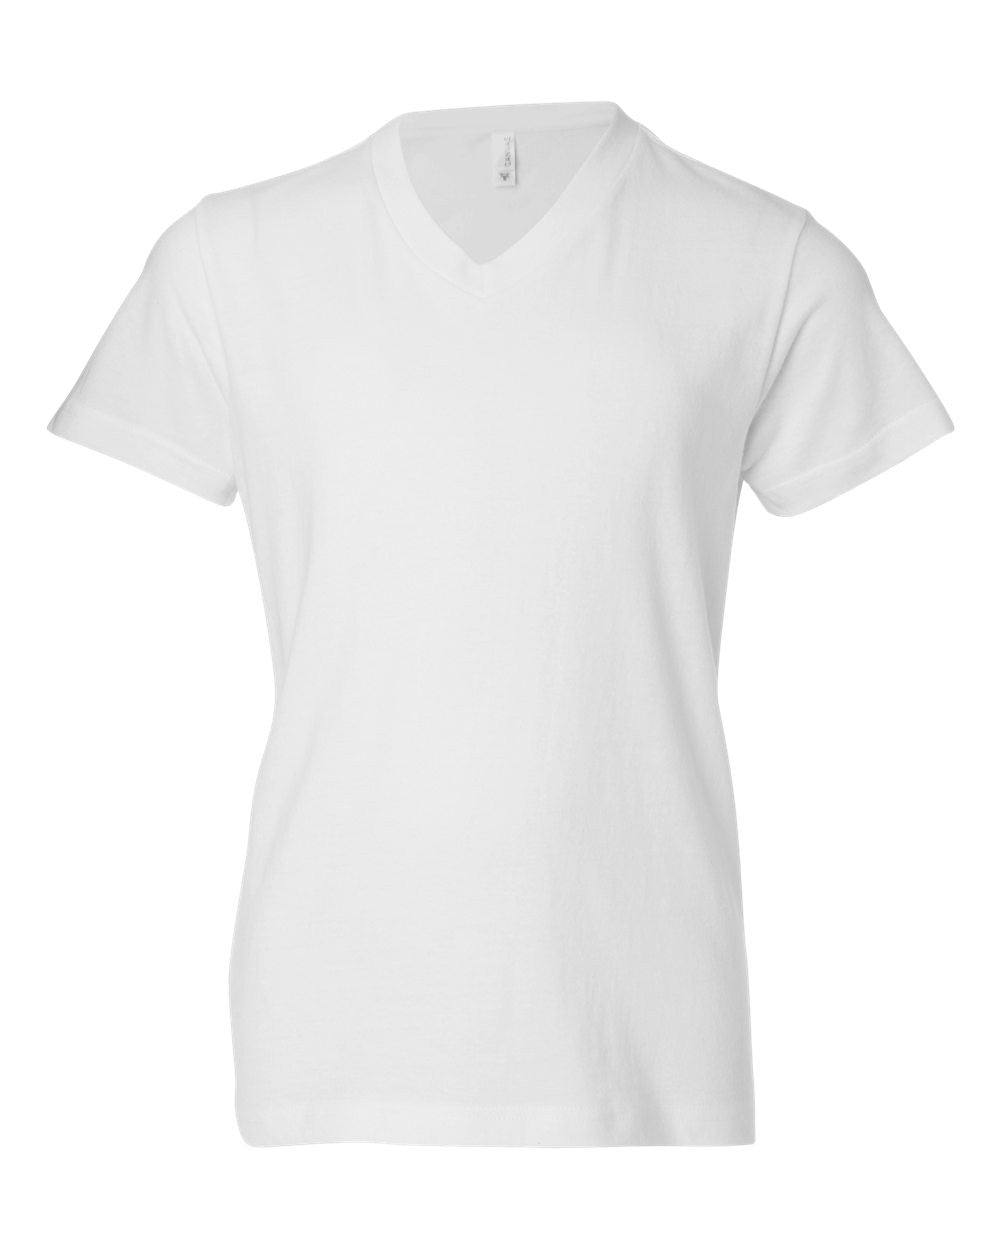 3005Y - Youth Short Sleeve V-Neck Jersey Tee